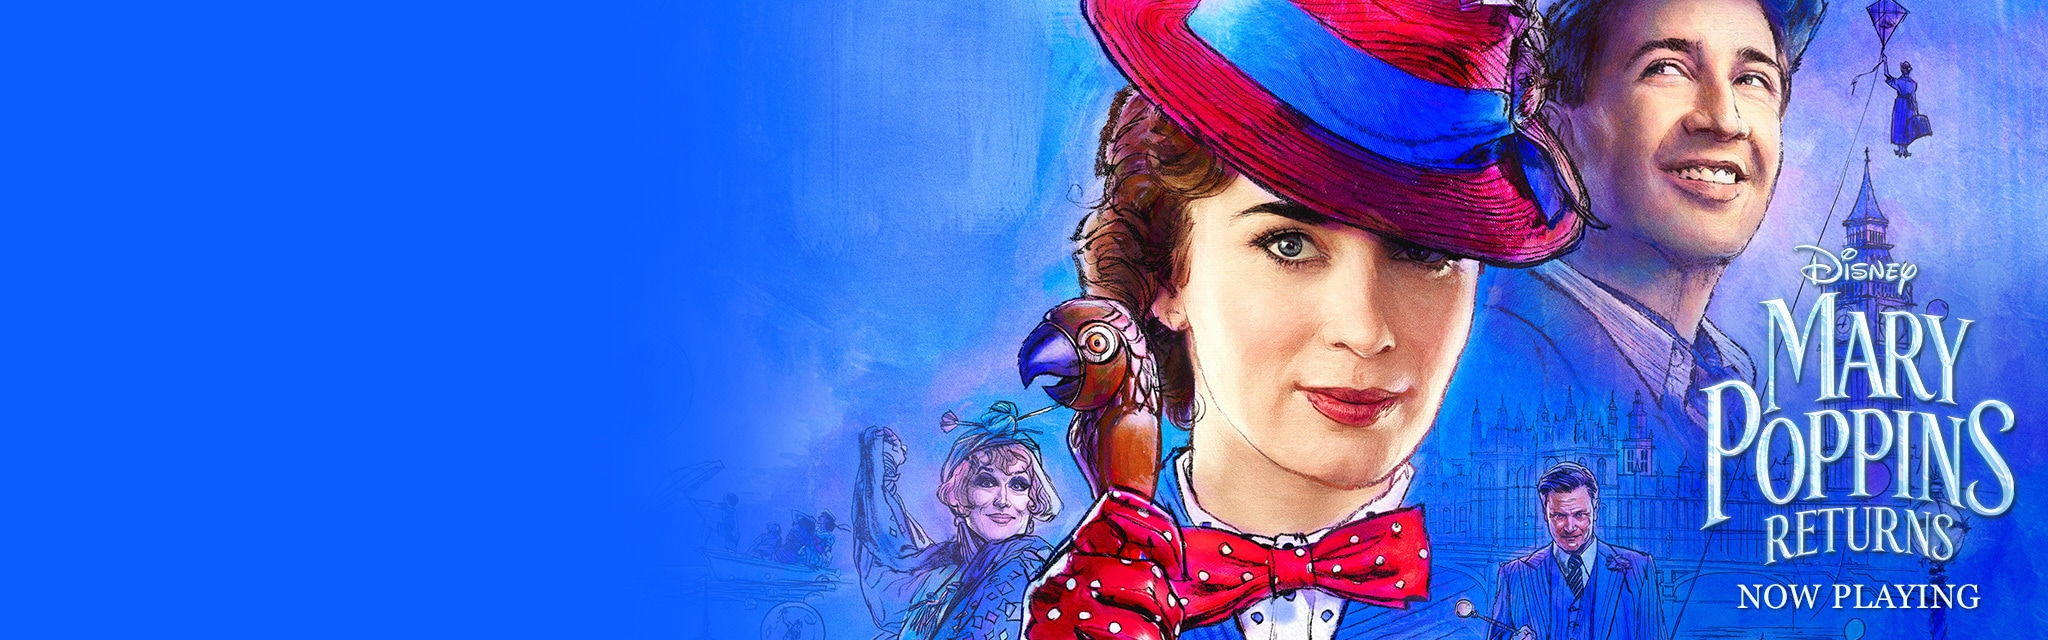 Mary Poppins Returns Now Playing In Theaters. Get Tickets